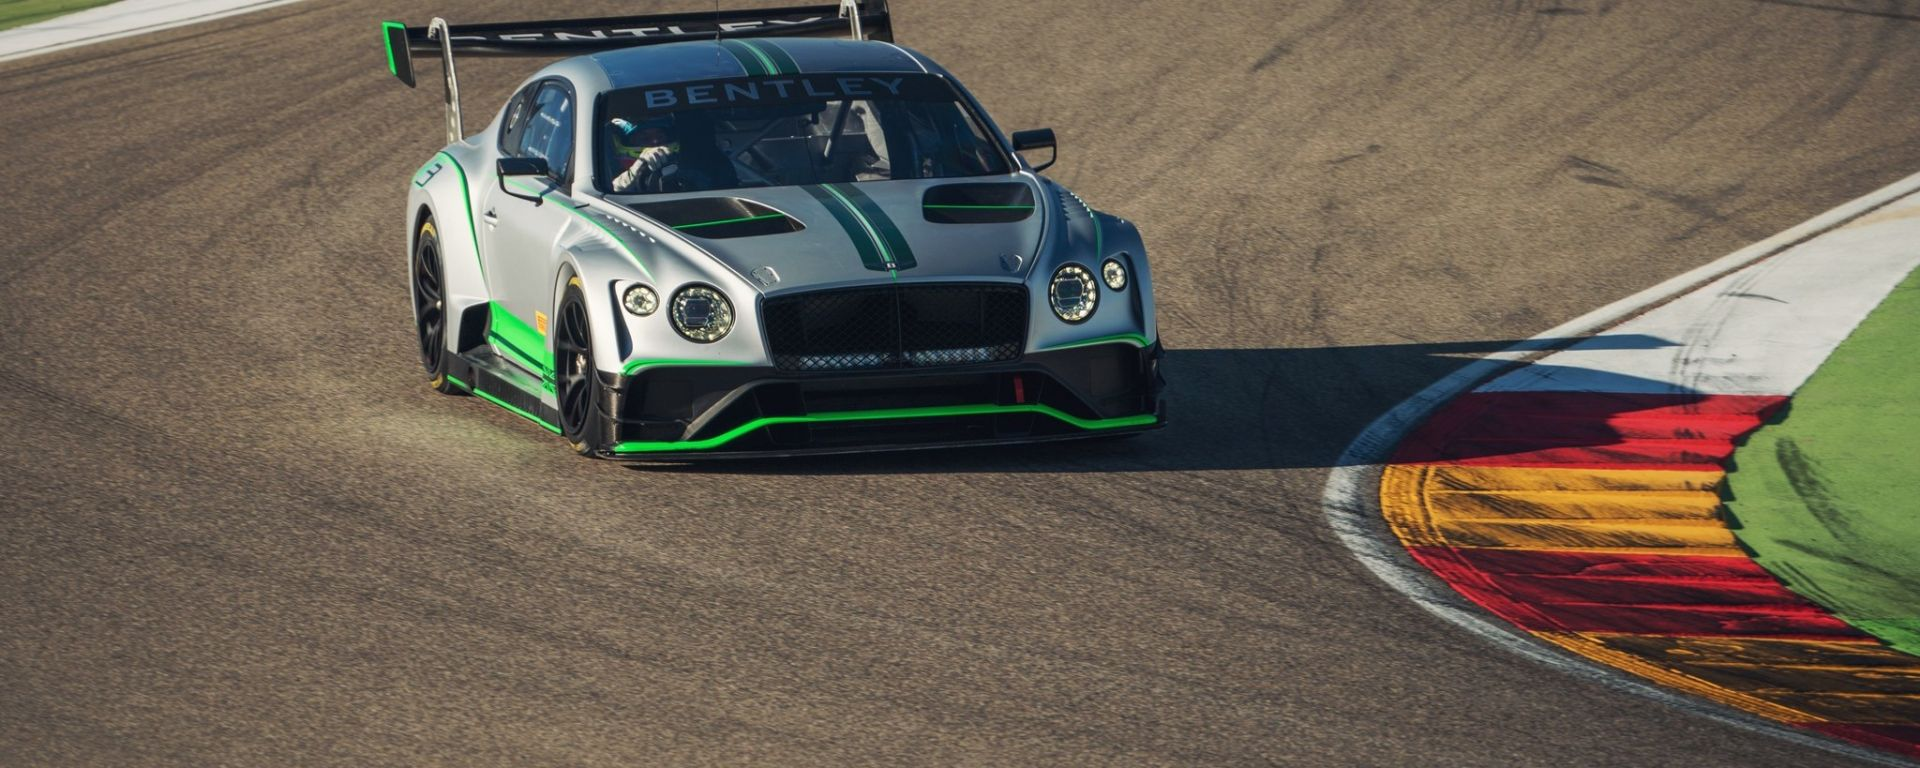 Bentley Continental GT3 - Blancpain 2018